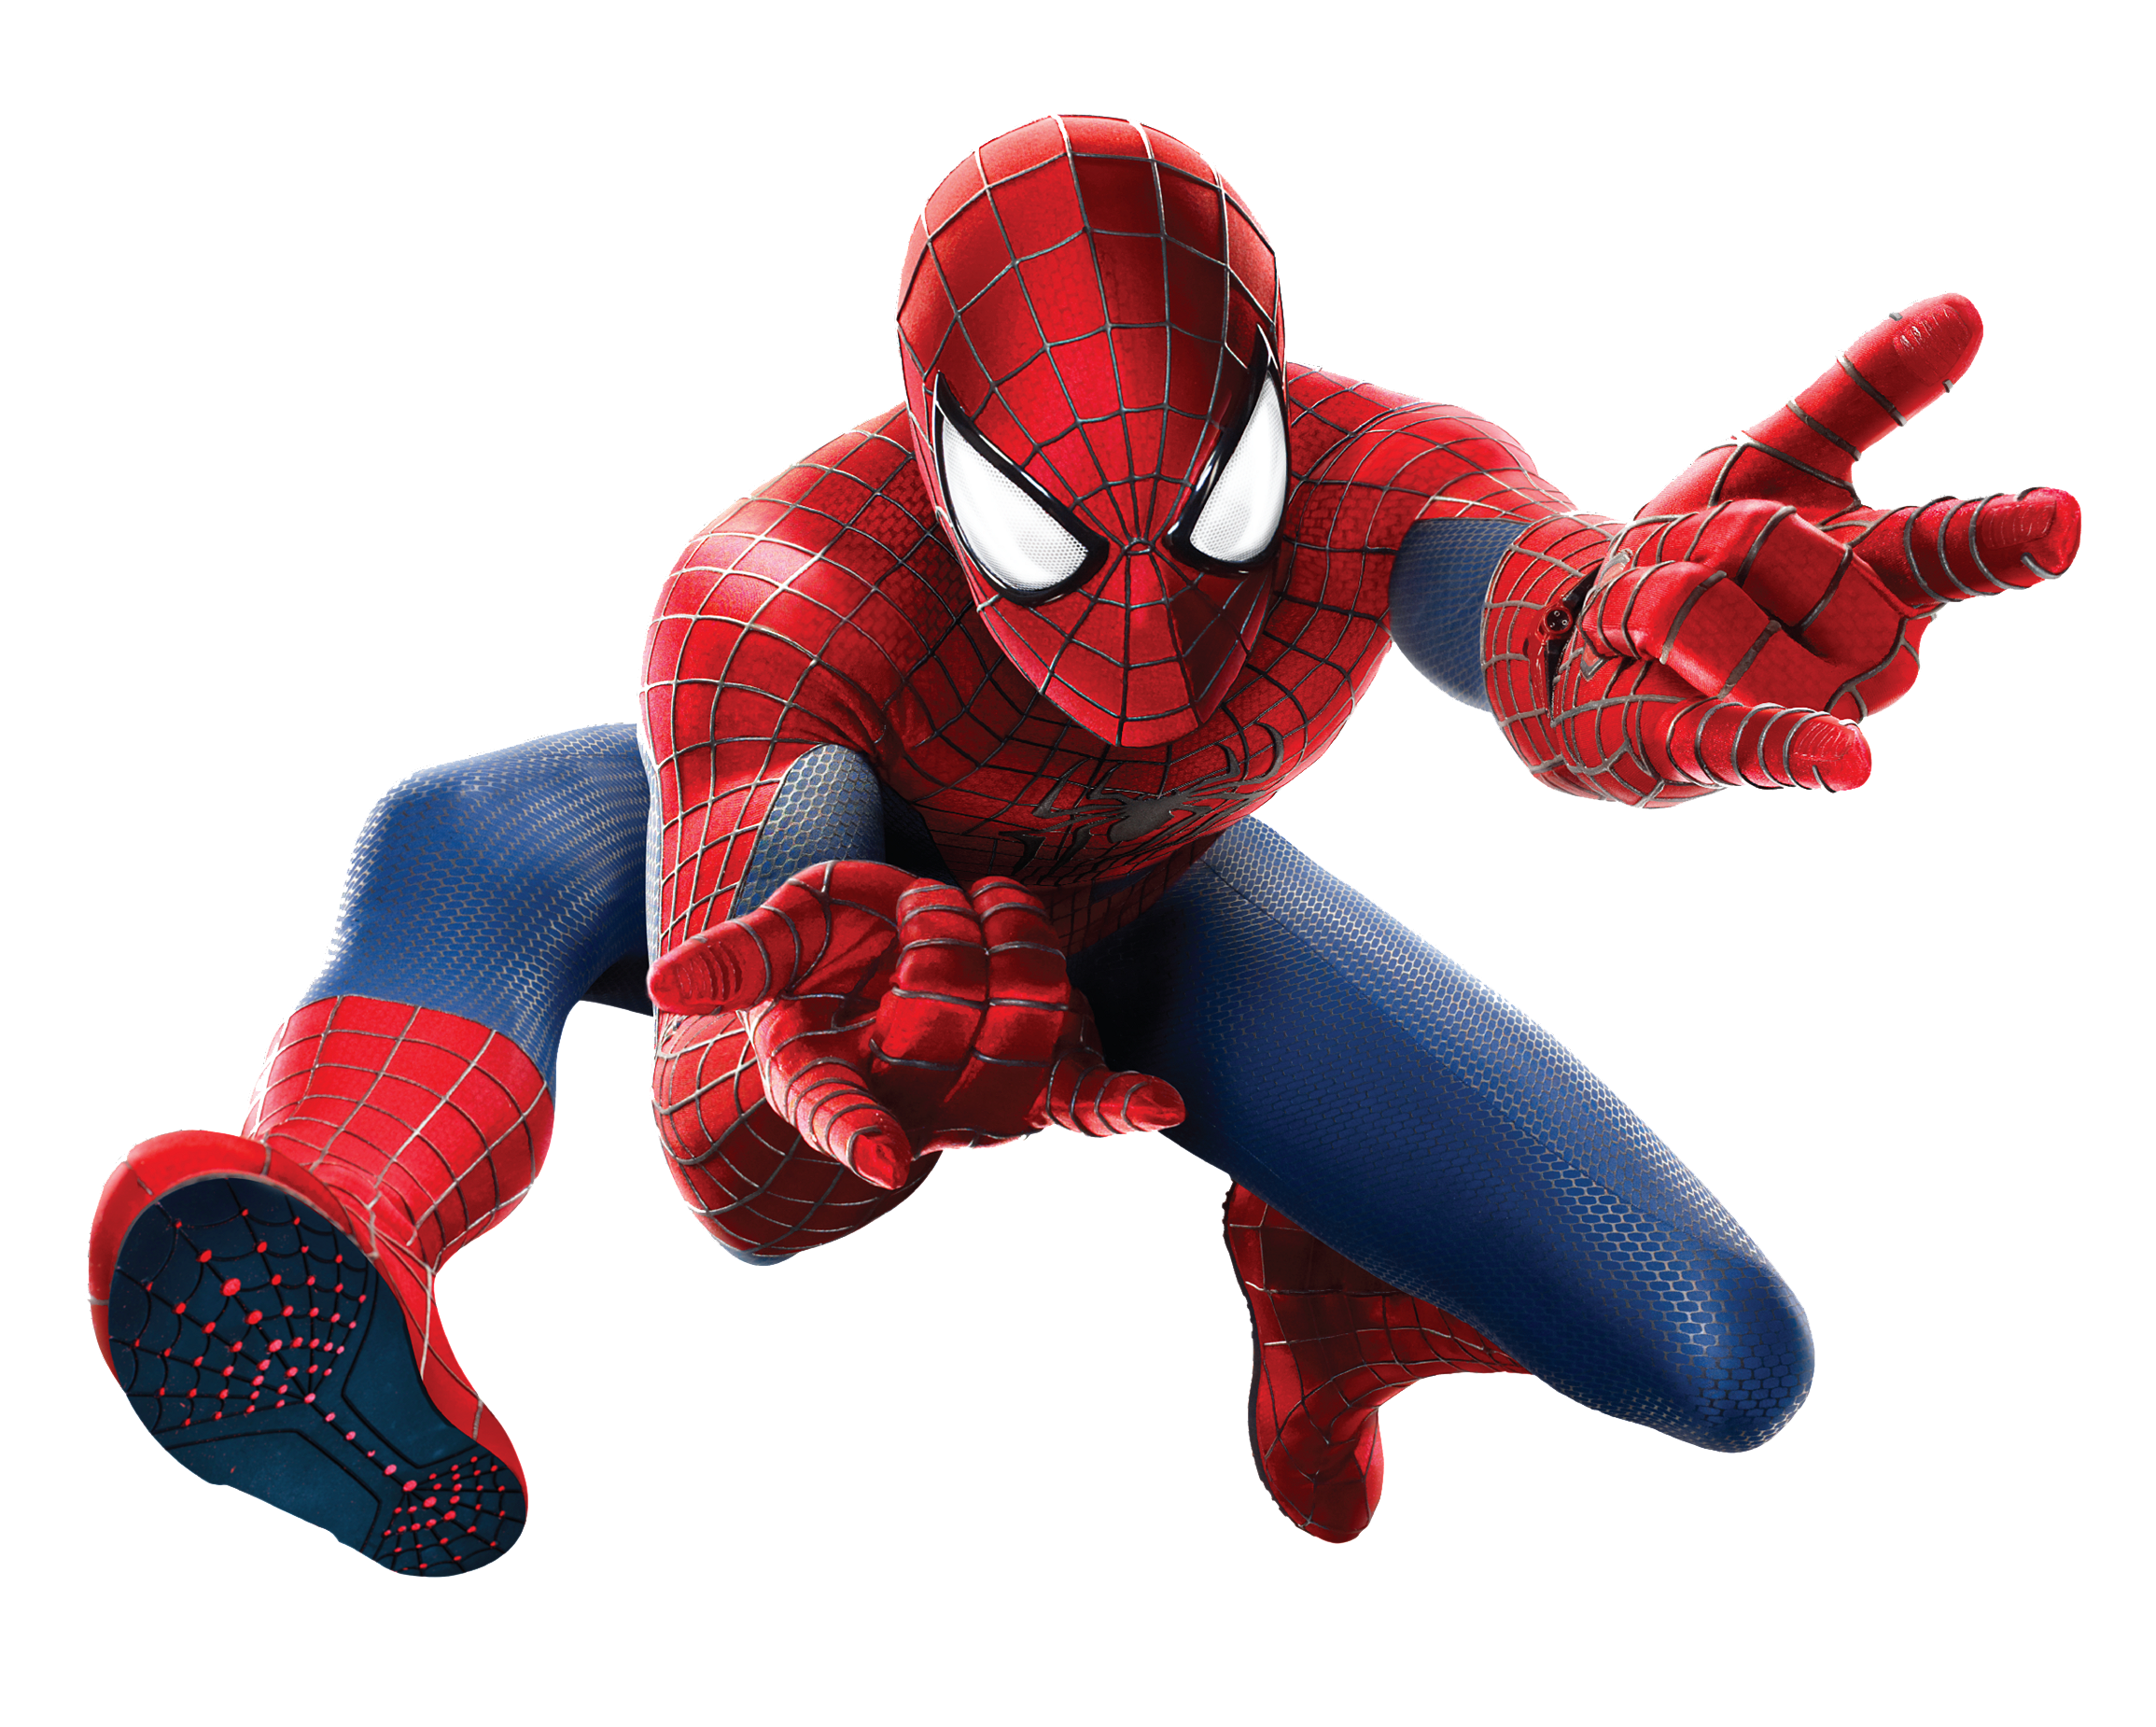 Spiderman HD PNG Transparent Spiderman HD PNG